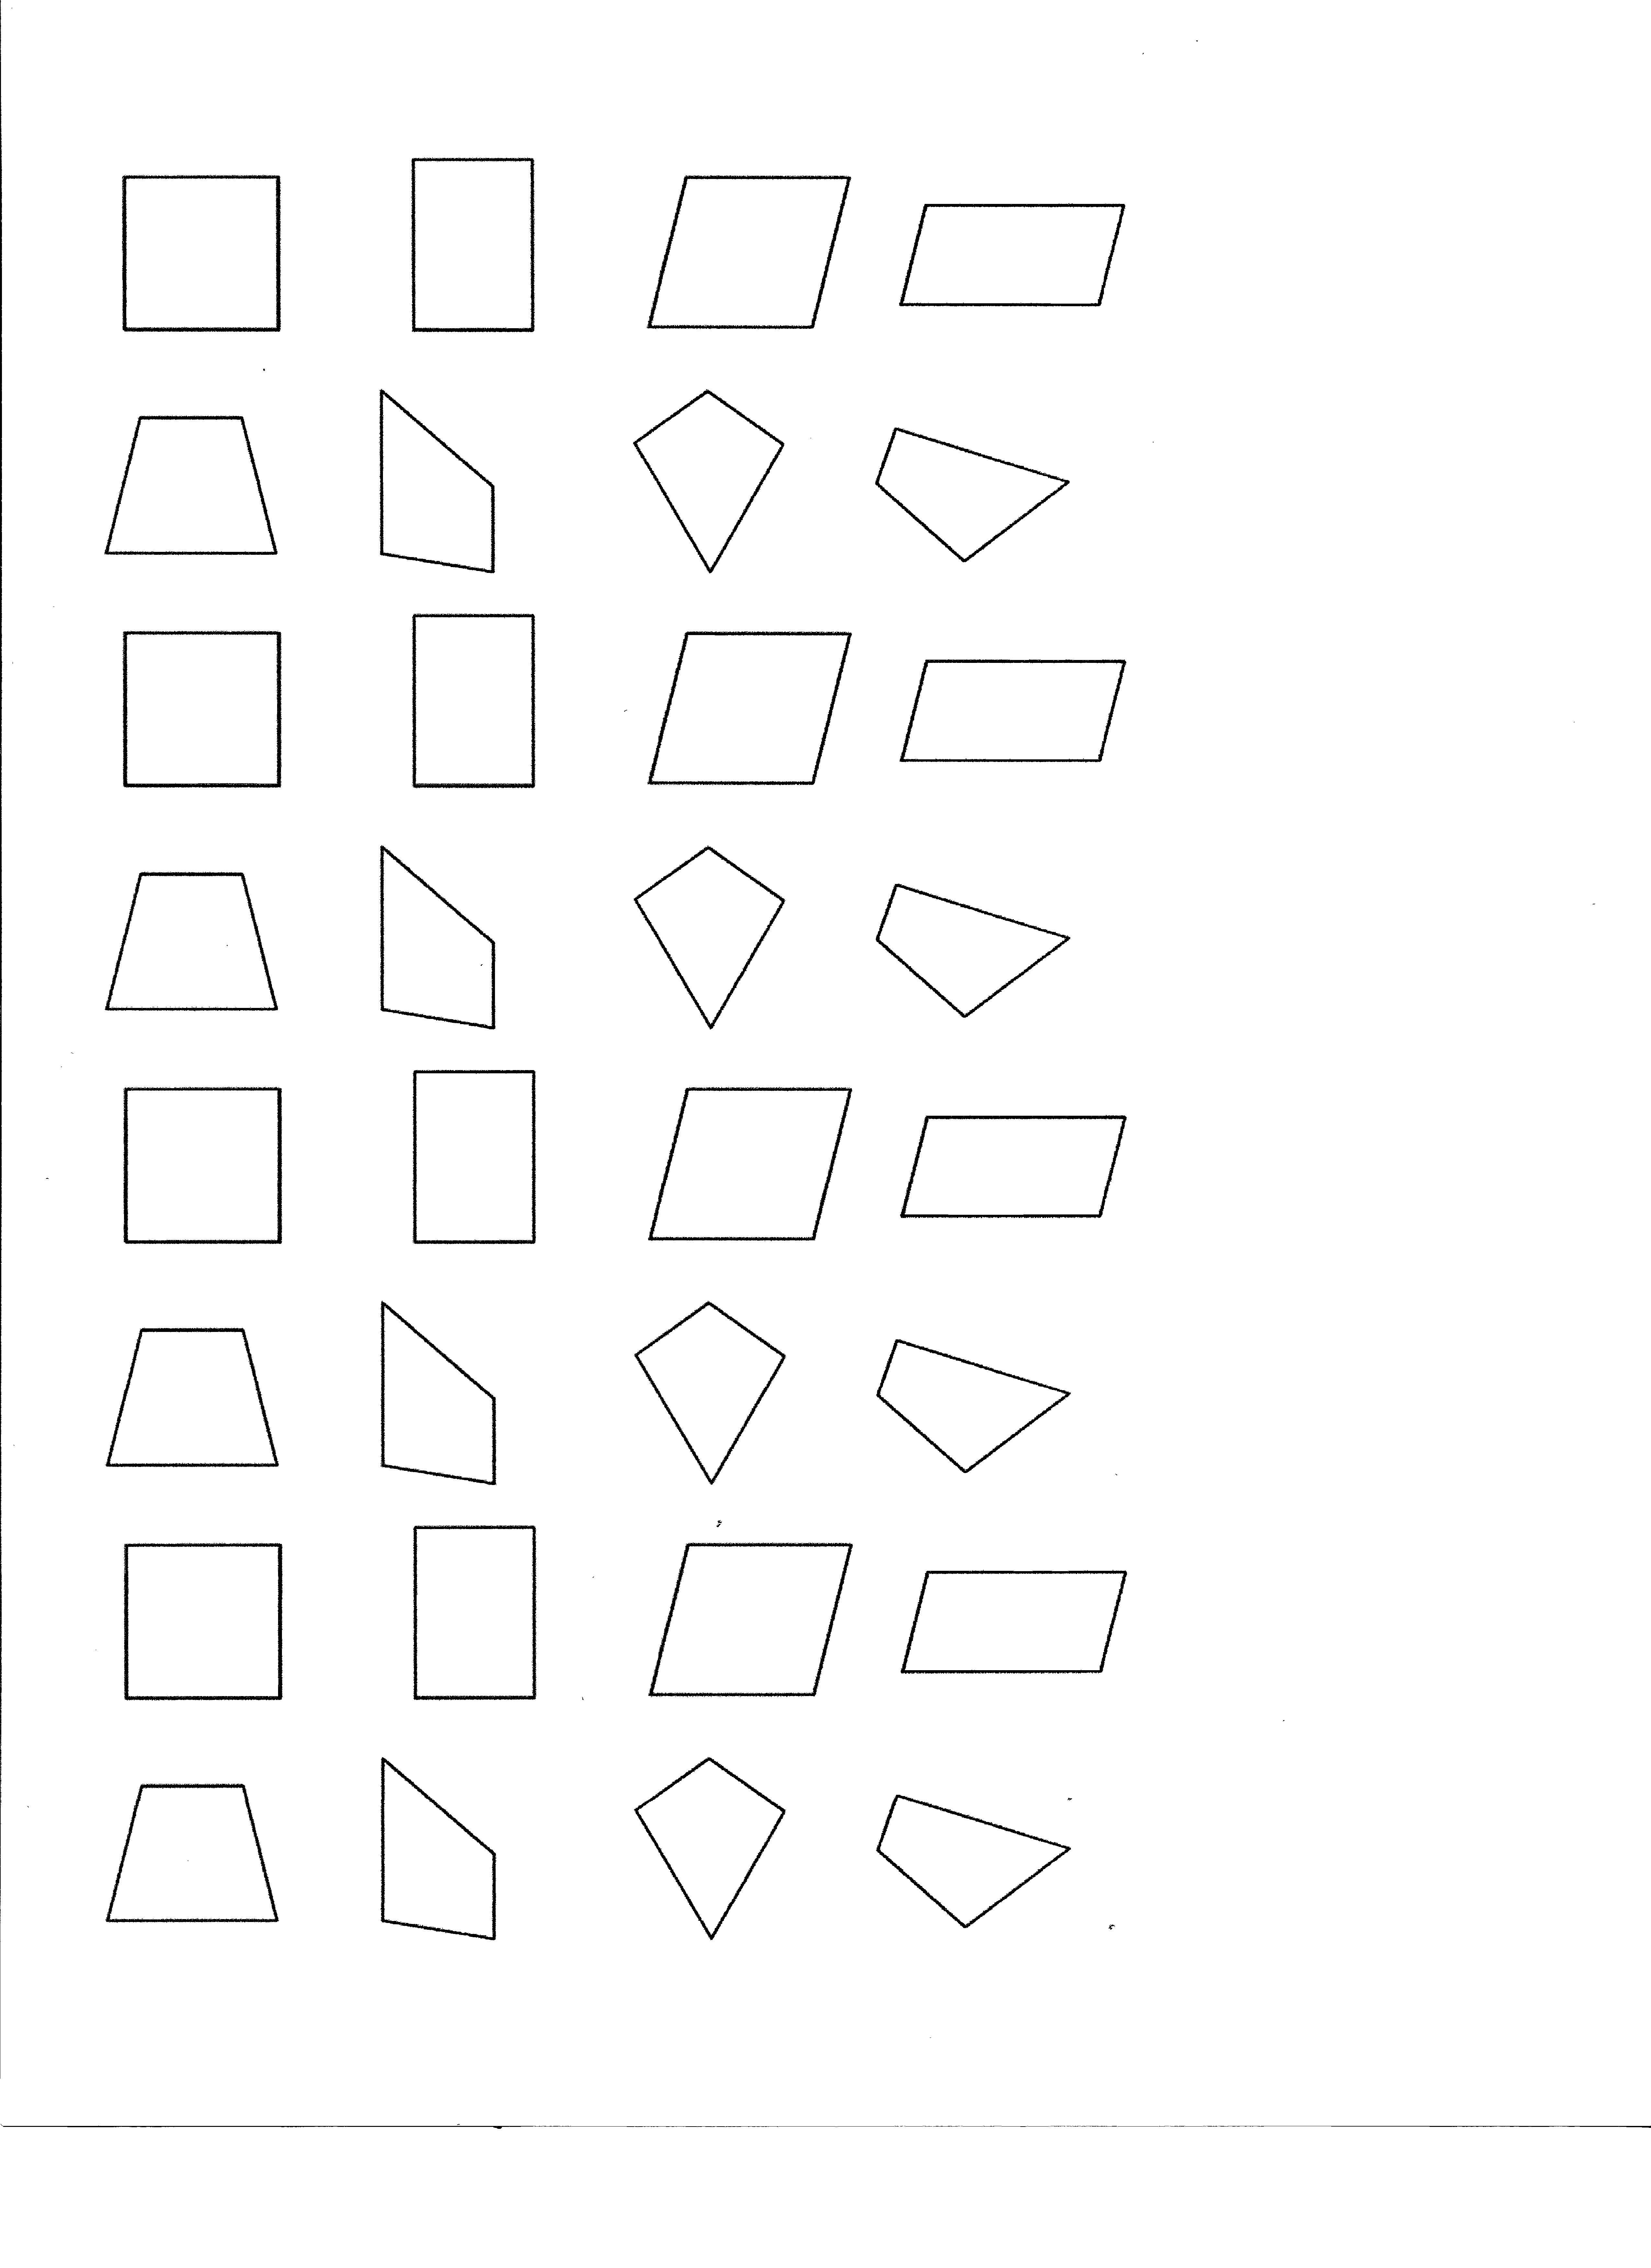 small resolution of Classifying Quadrilaterals Worksheets   Printable Worksheets and Activities  for Teachers